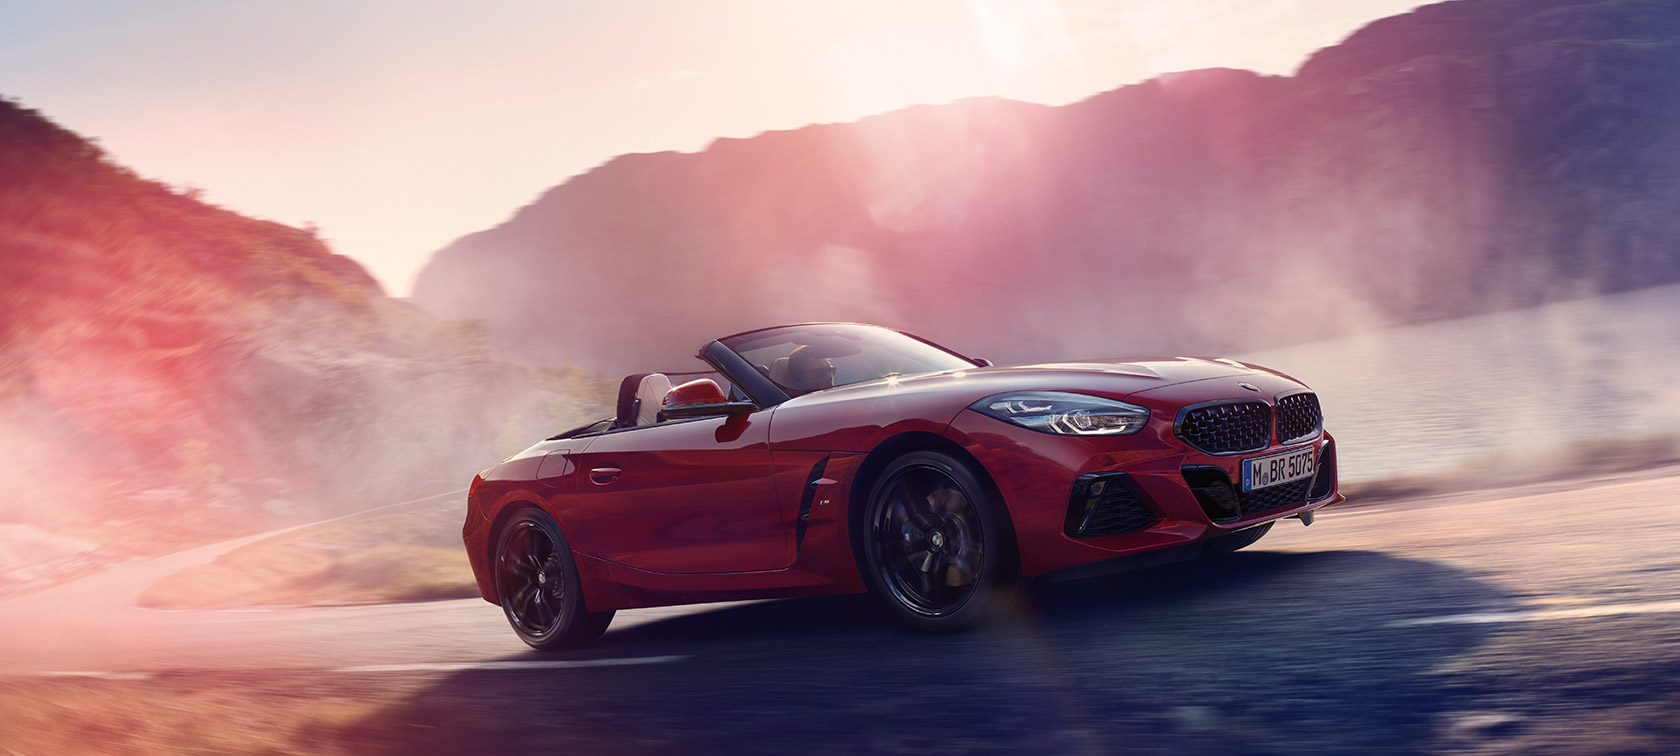 BMW Z4 Roadster climbing a hill